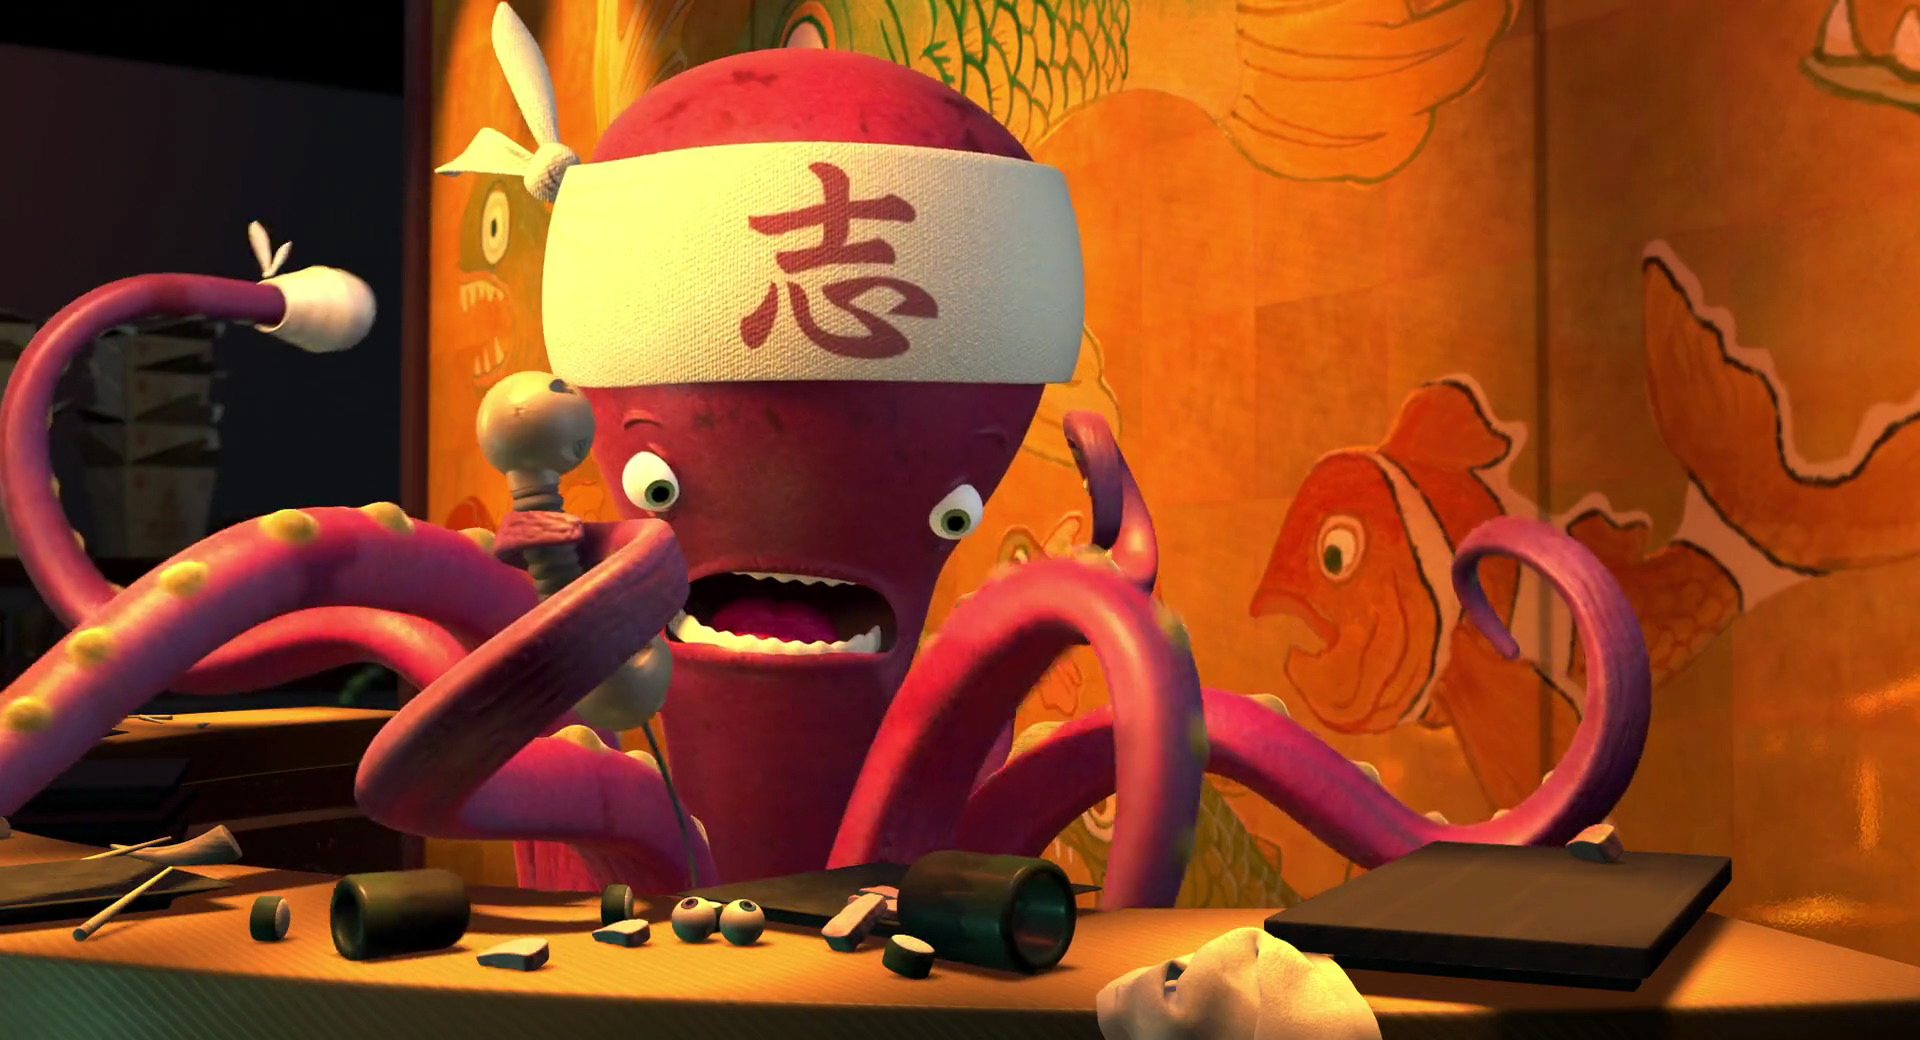 chef-sushi-personnage-monstres-cie-02